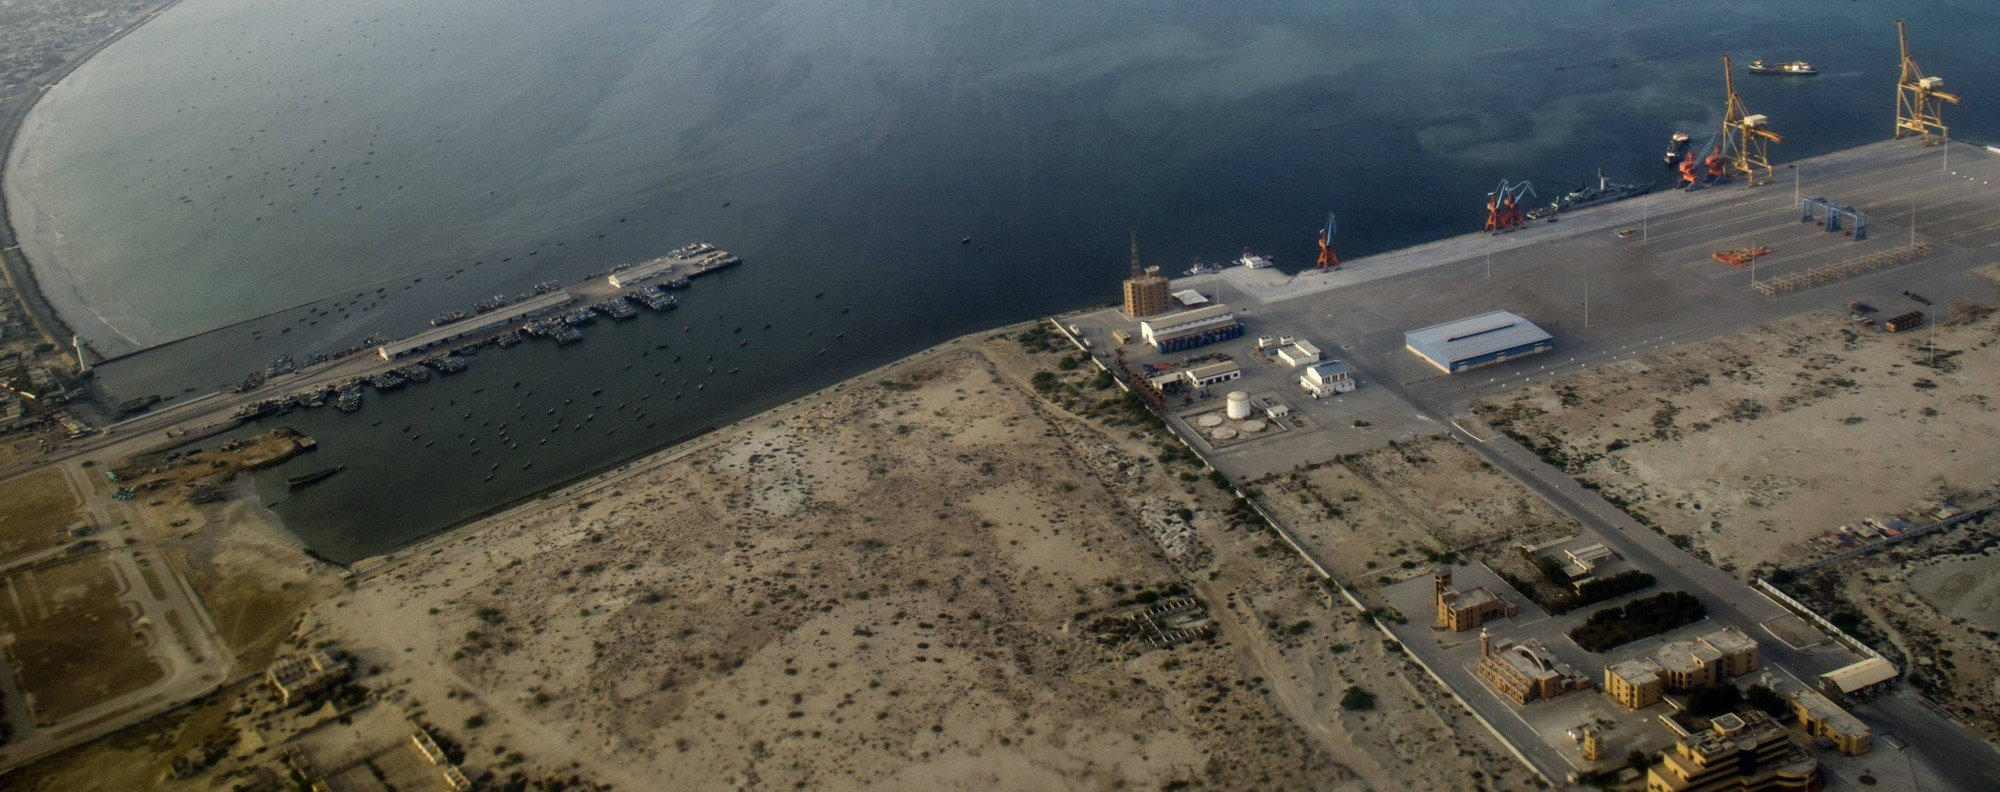 Gwadar Port, Pakistan.